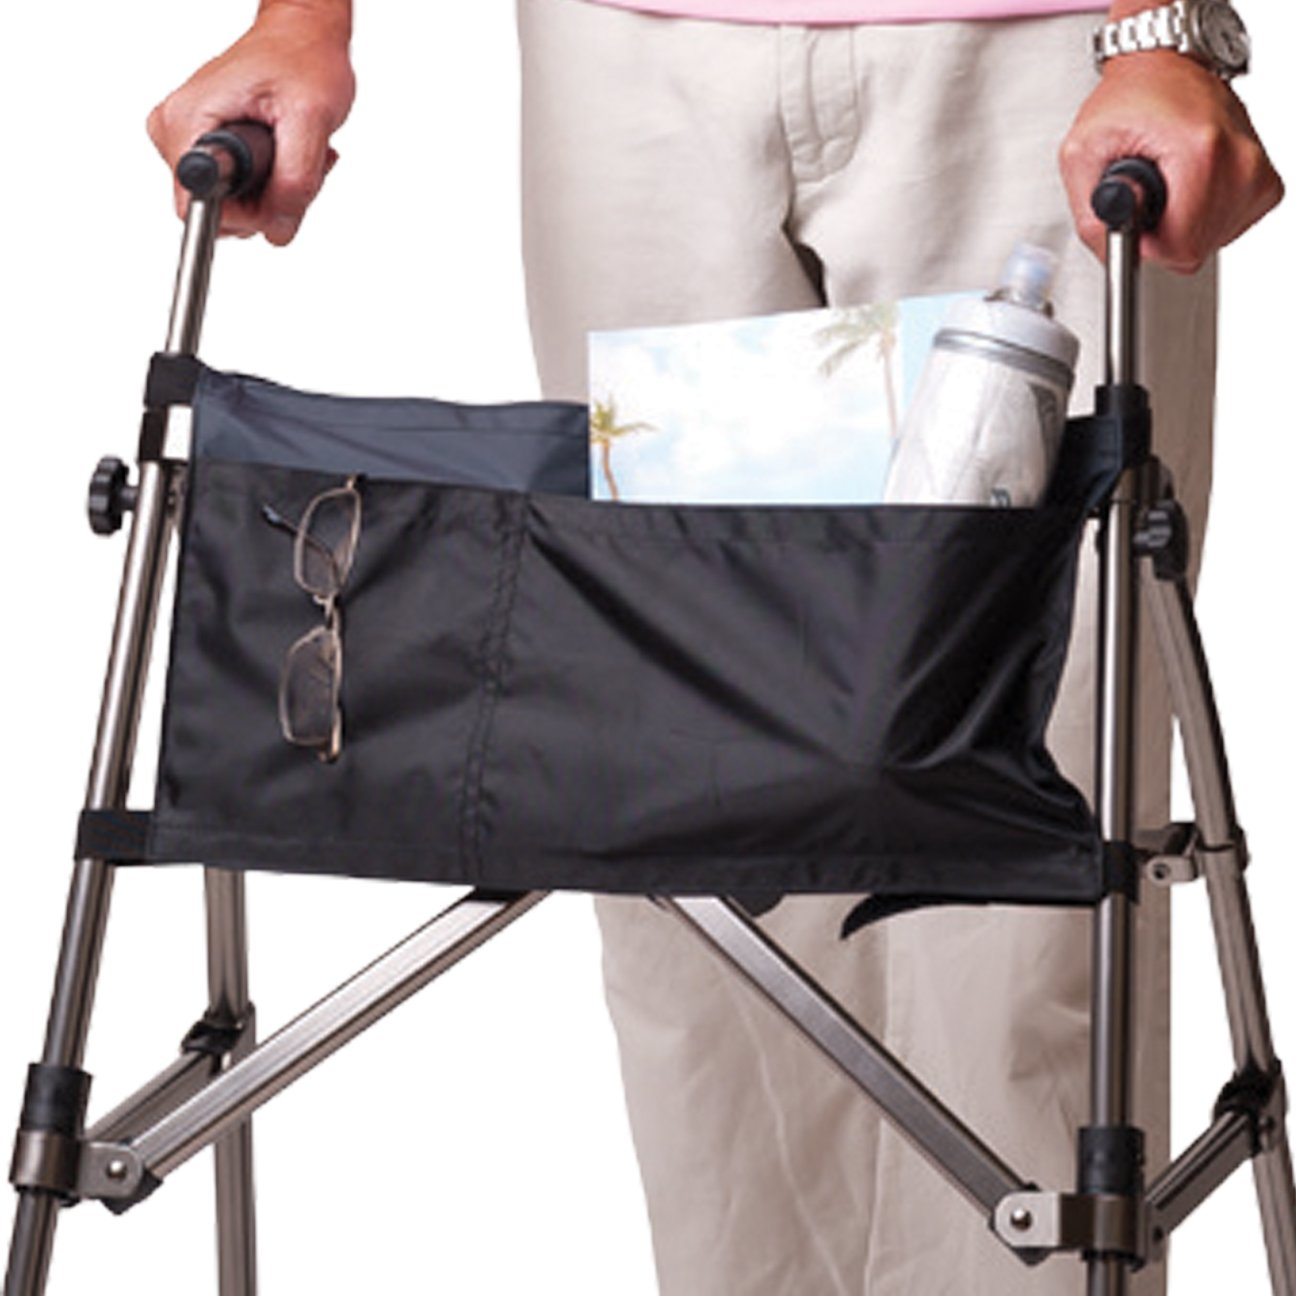 Stander Walker Replacement Organizer Pouch - Removable Nylon 2-Pocket Pouch with Velcro Straps, For Stander EZ Fold N' Go Walker, Able Life Space Saver Walker